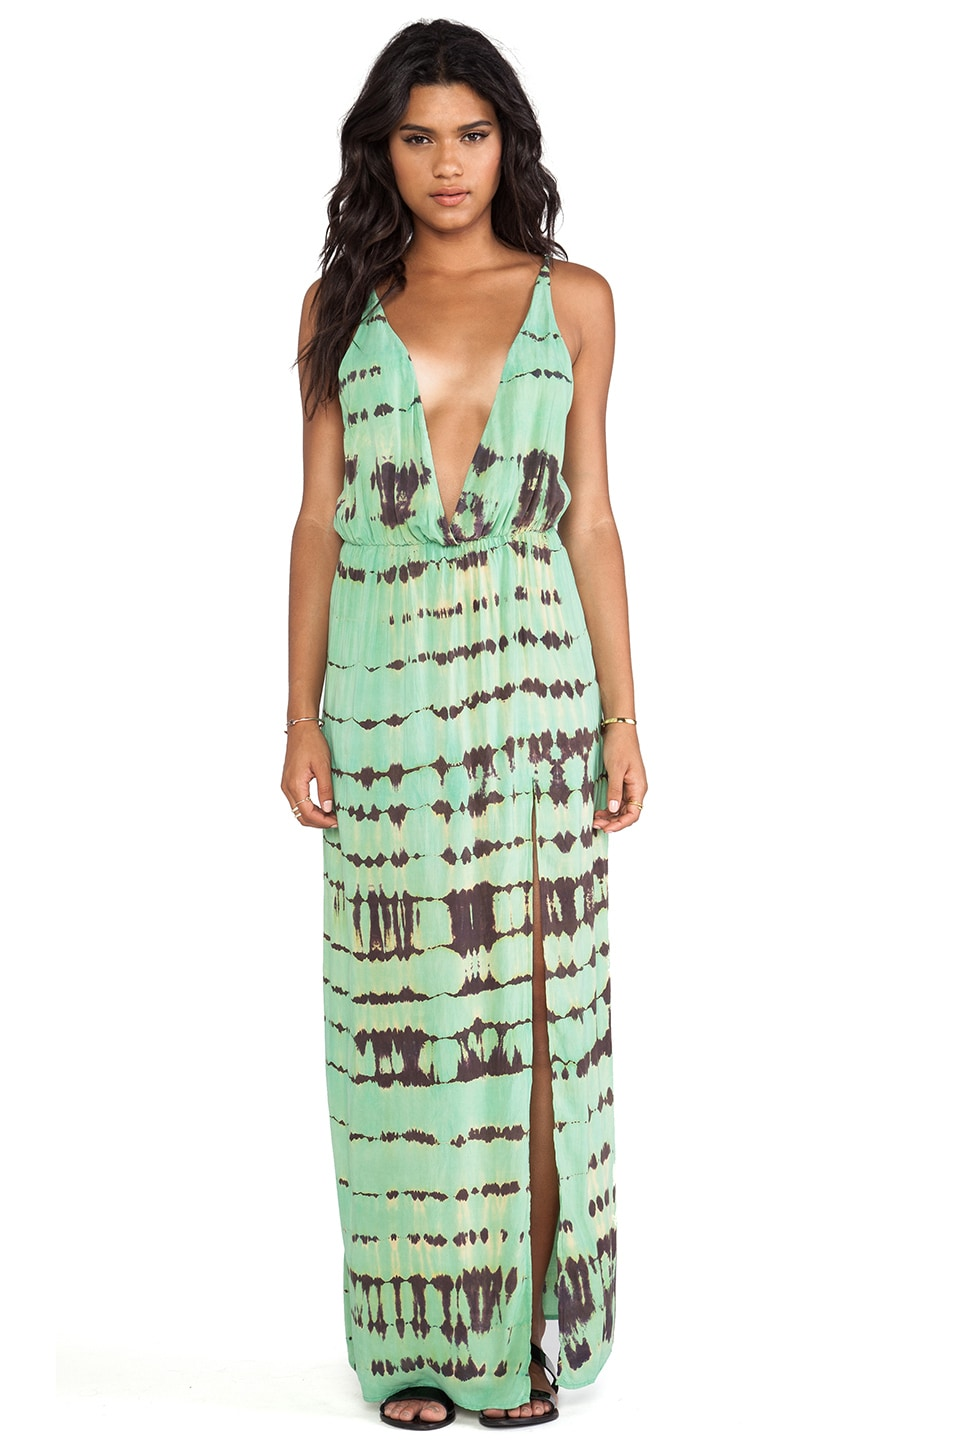 Blue Life High Tide Maxi Dress in Turquoise